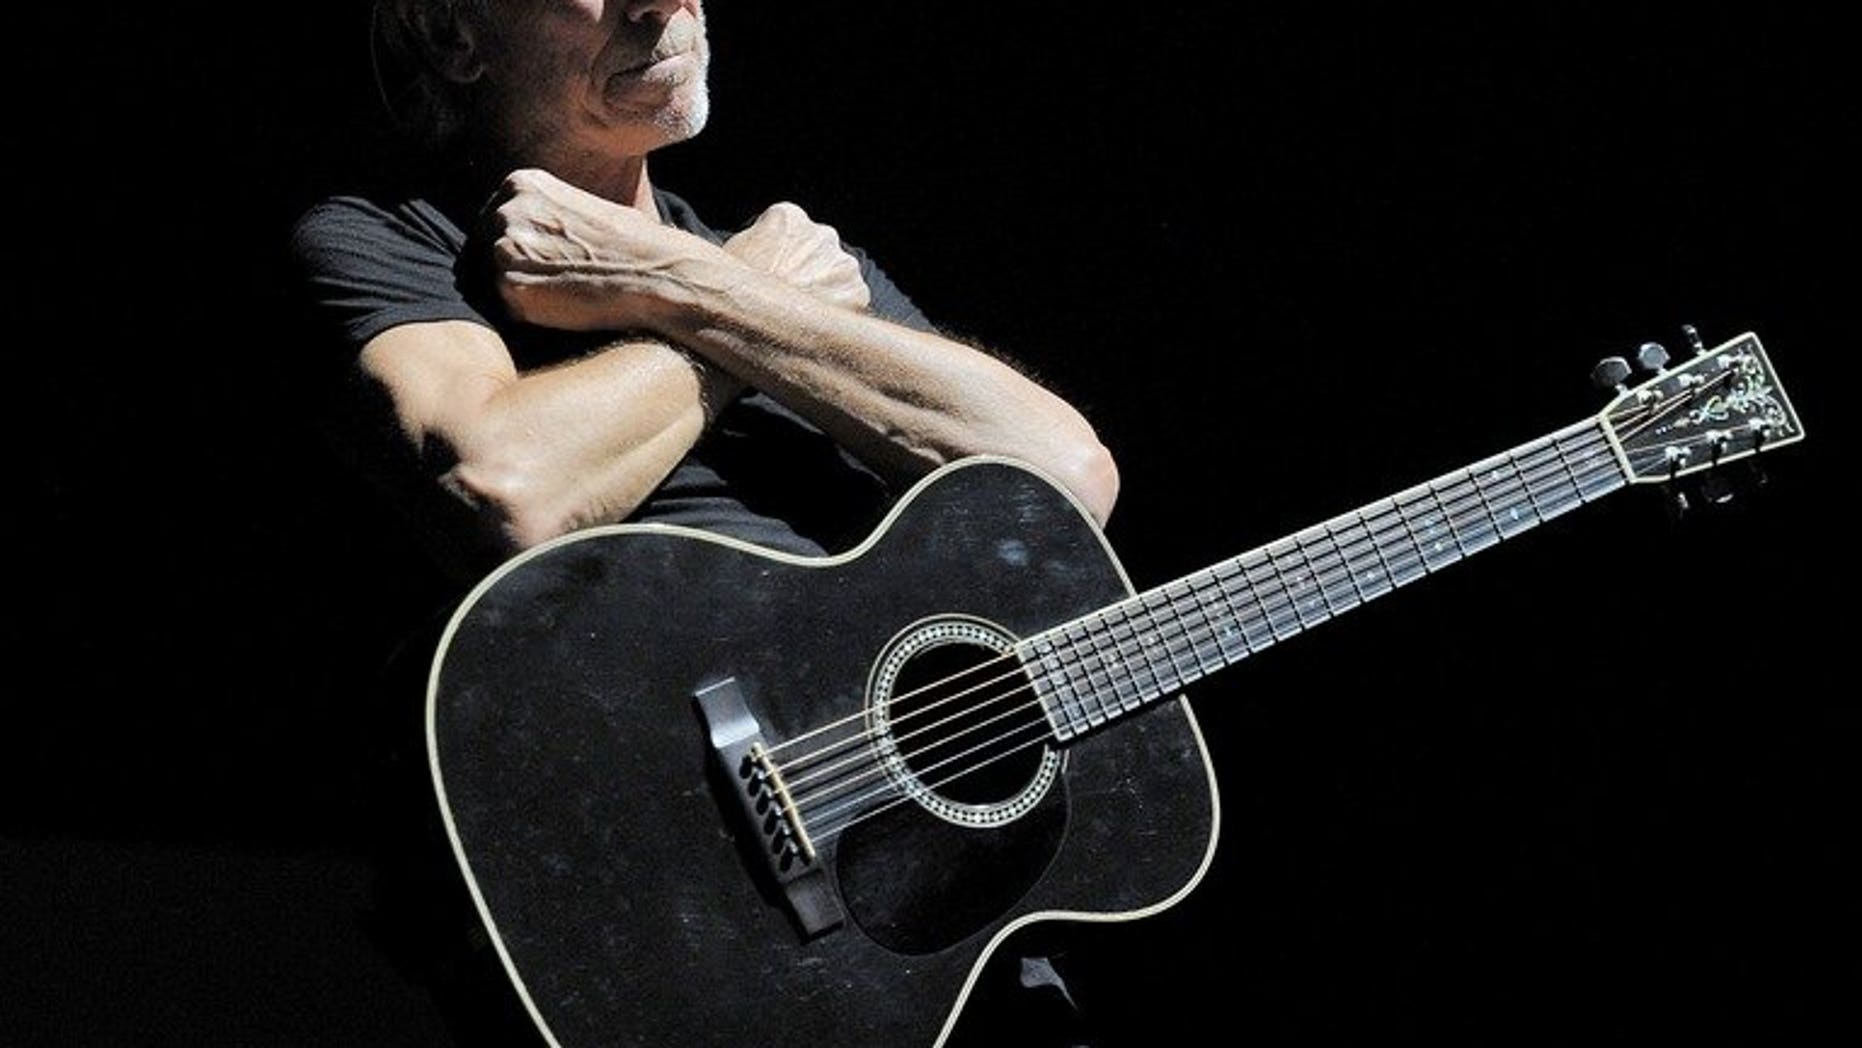 British singer Roger Waters performs during his 'The Wall' tour at the Esprit Arena in Duesseldorf, Germany, on September 6, 2013.